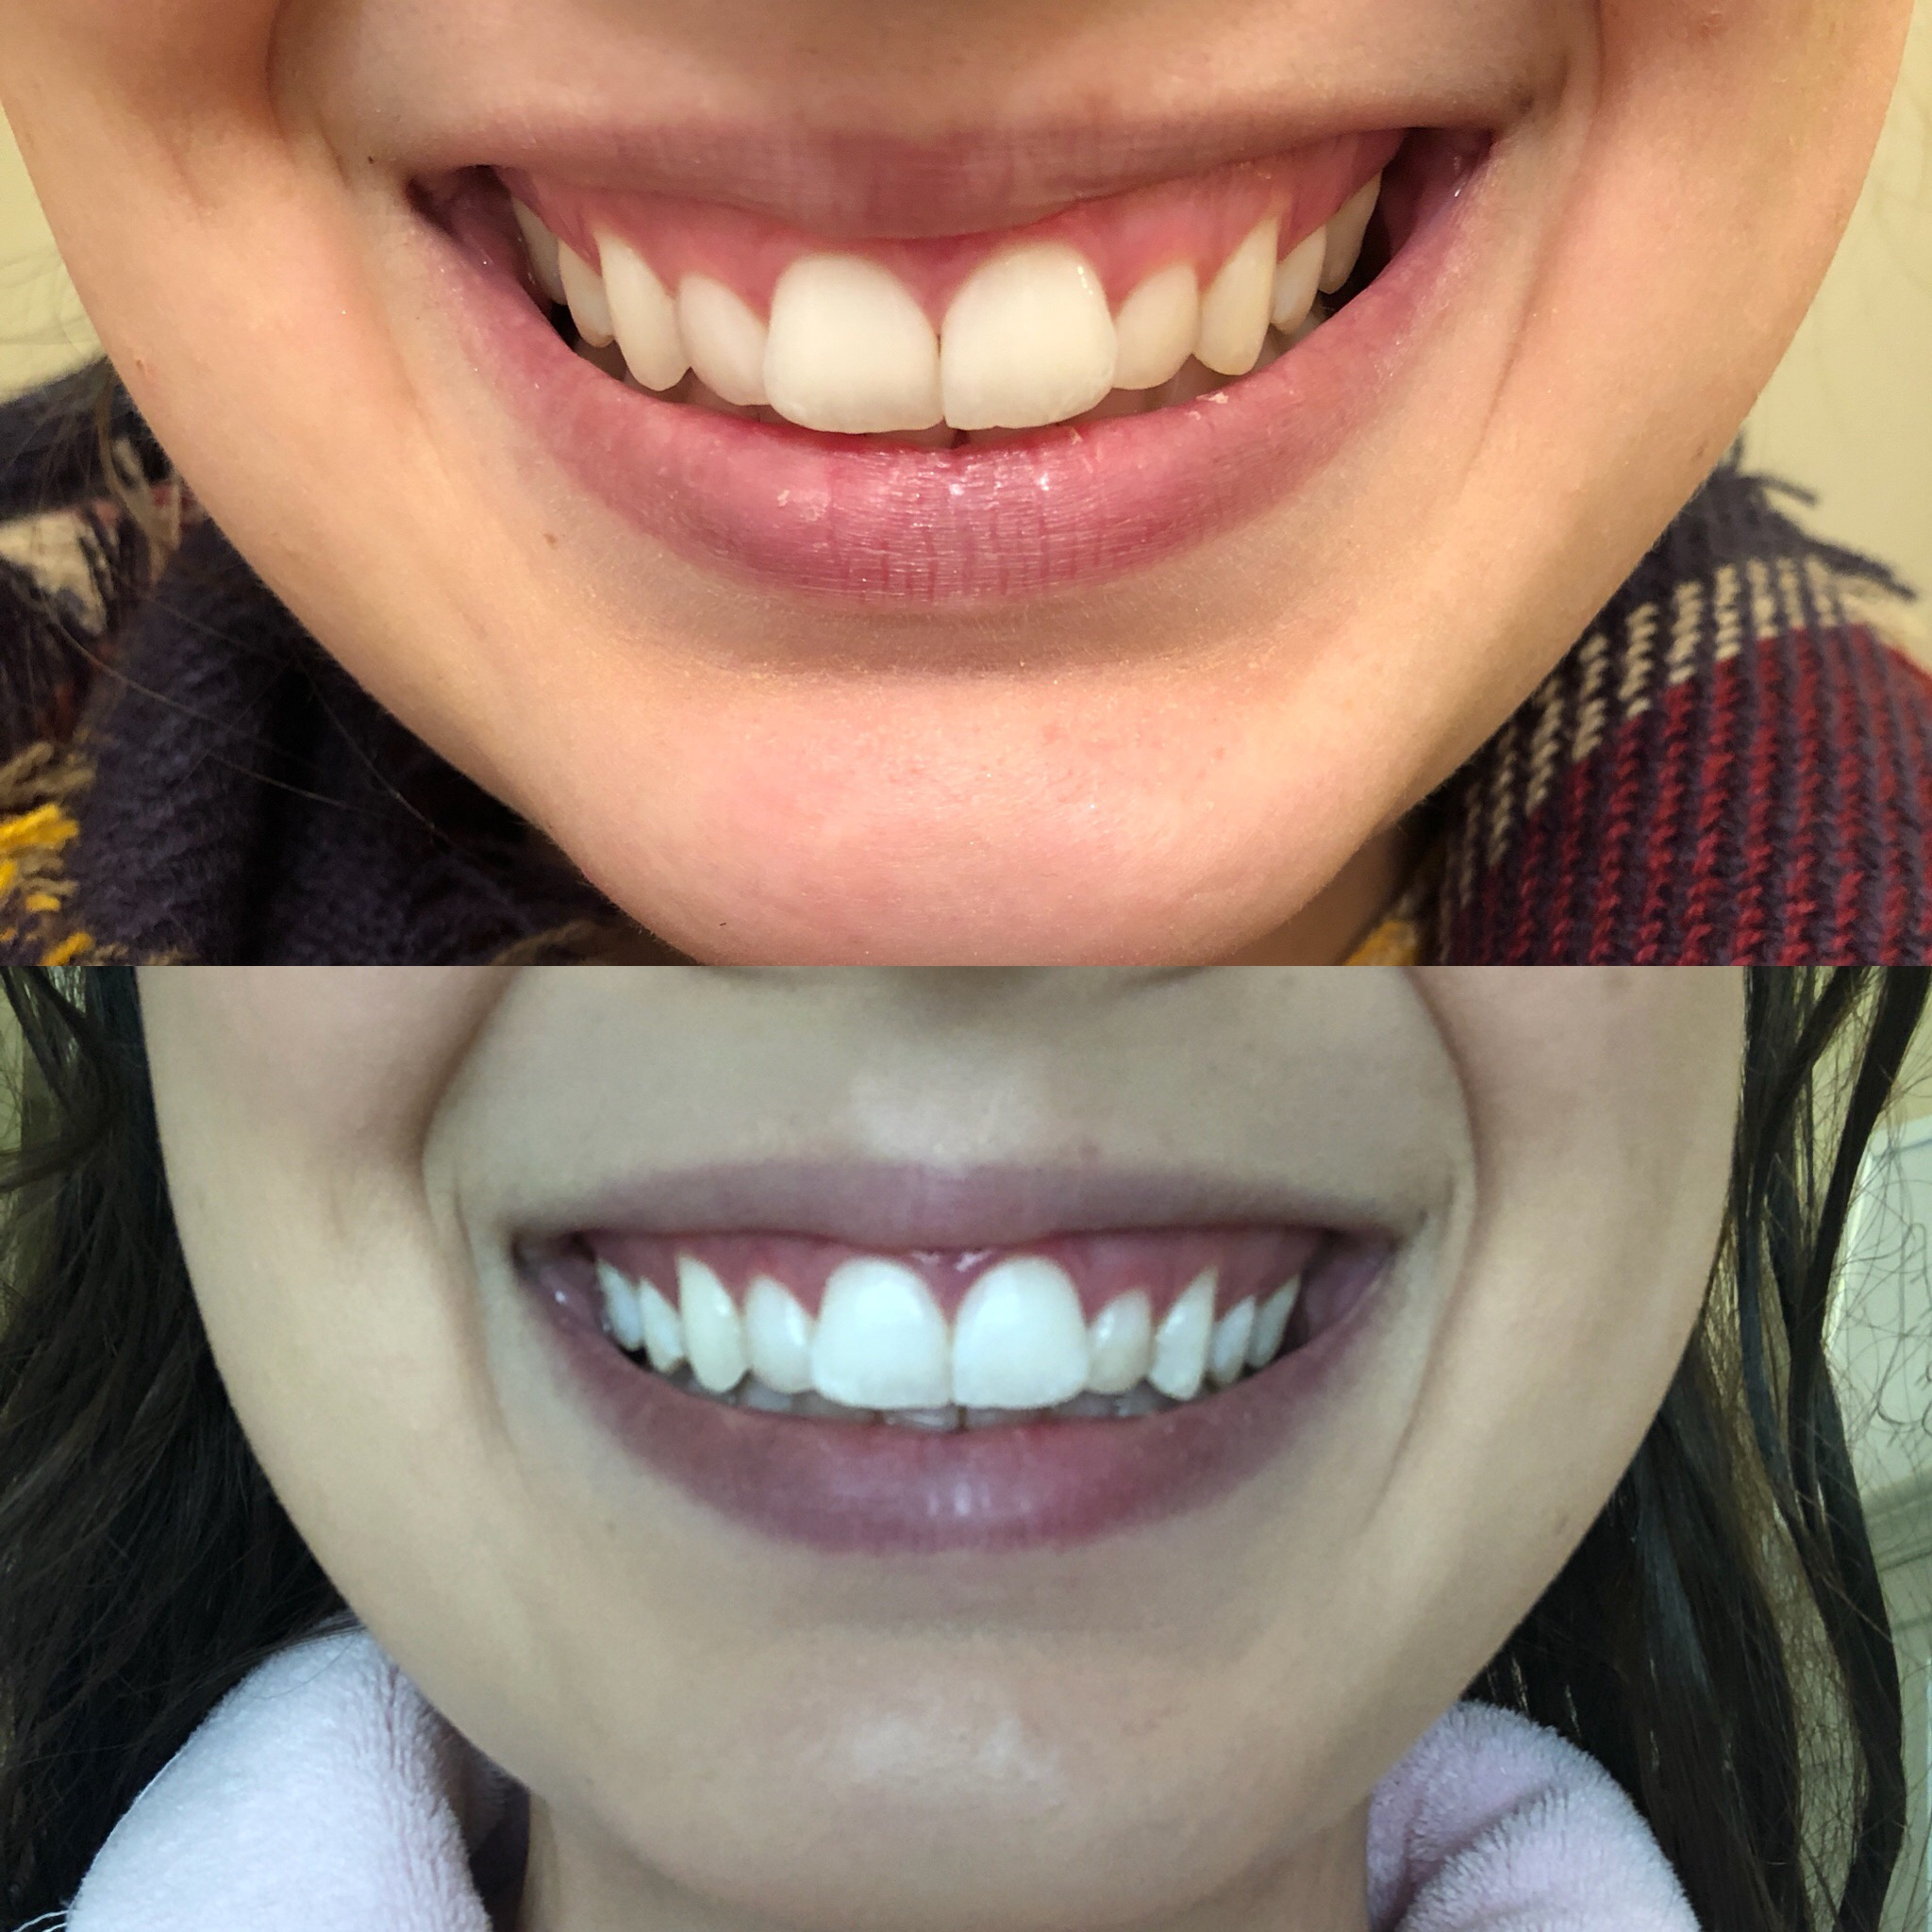 Results after just a few days of using the system